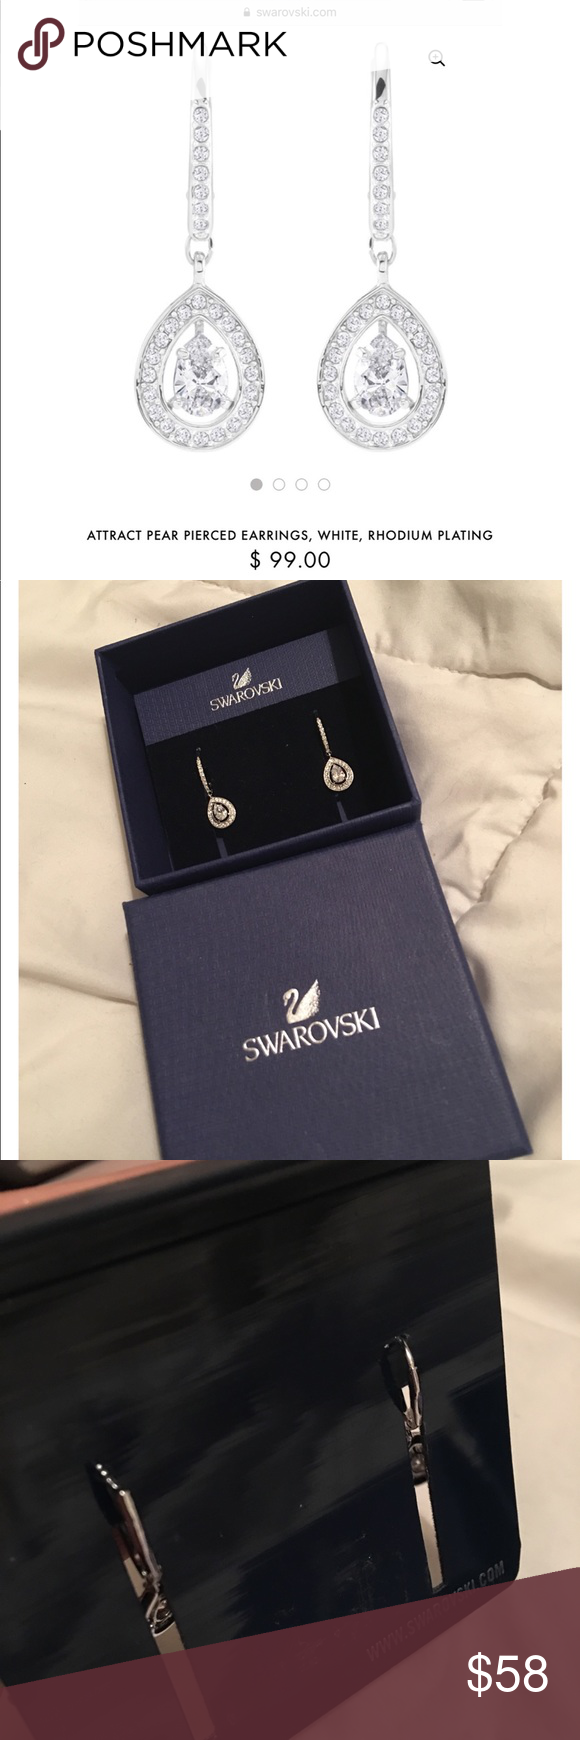 b225c14c01cd98 SWAROVSKI ATTRACT PEAR PIERCED EARRINGS A stunning new addition to  Swarovski s bestselling Attract family. This